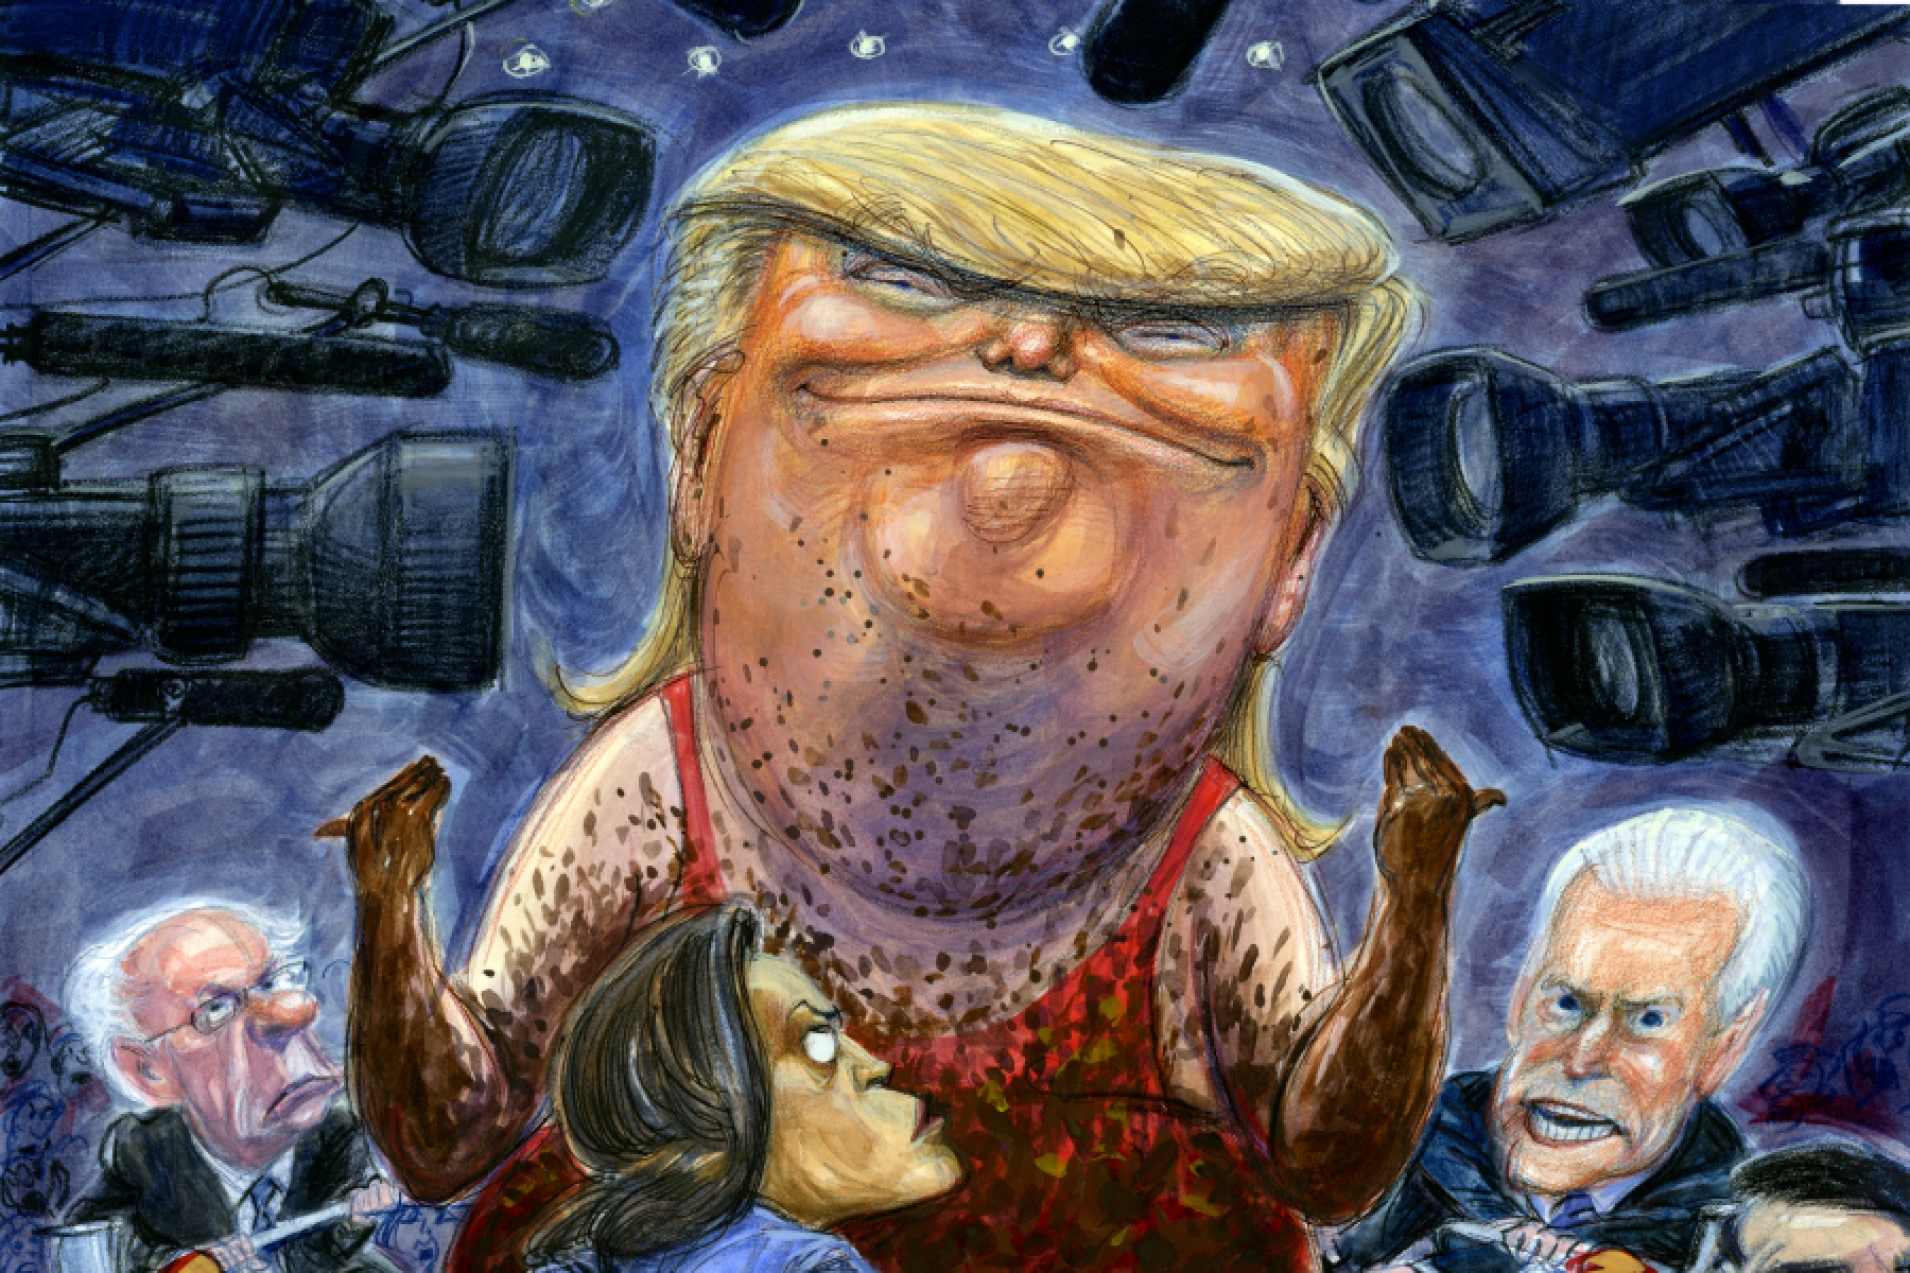 Illustration by Victor Juhasz for Rolling Stone